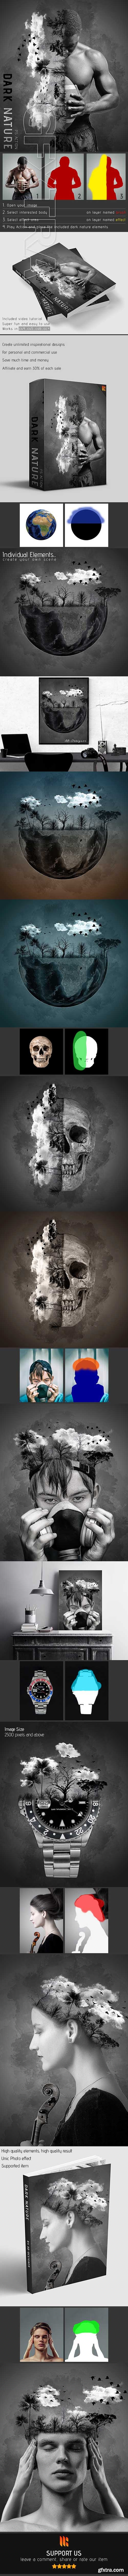 Graphicriver - Dark Nature Photoshop Action 22063485